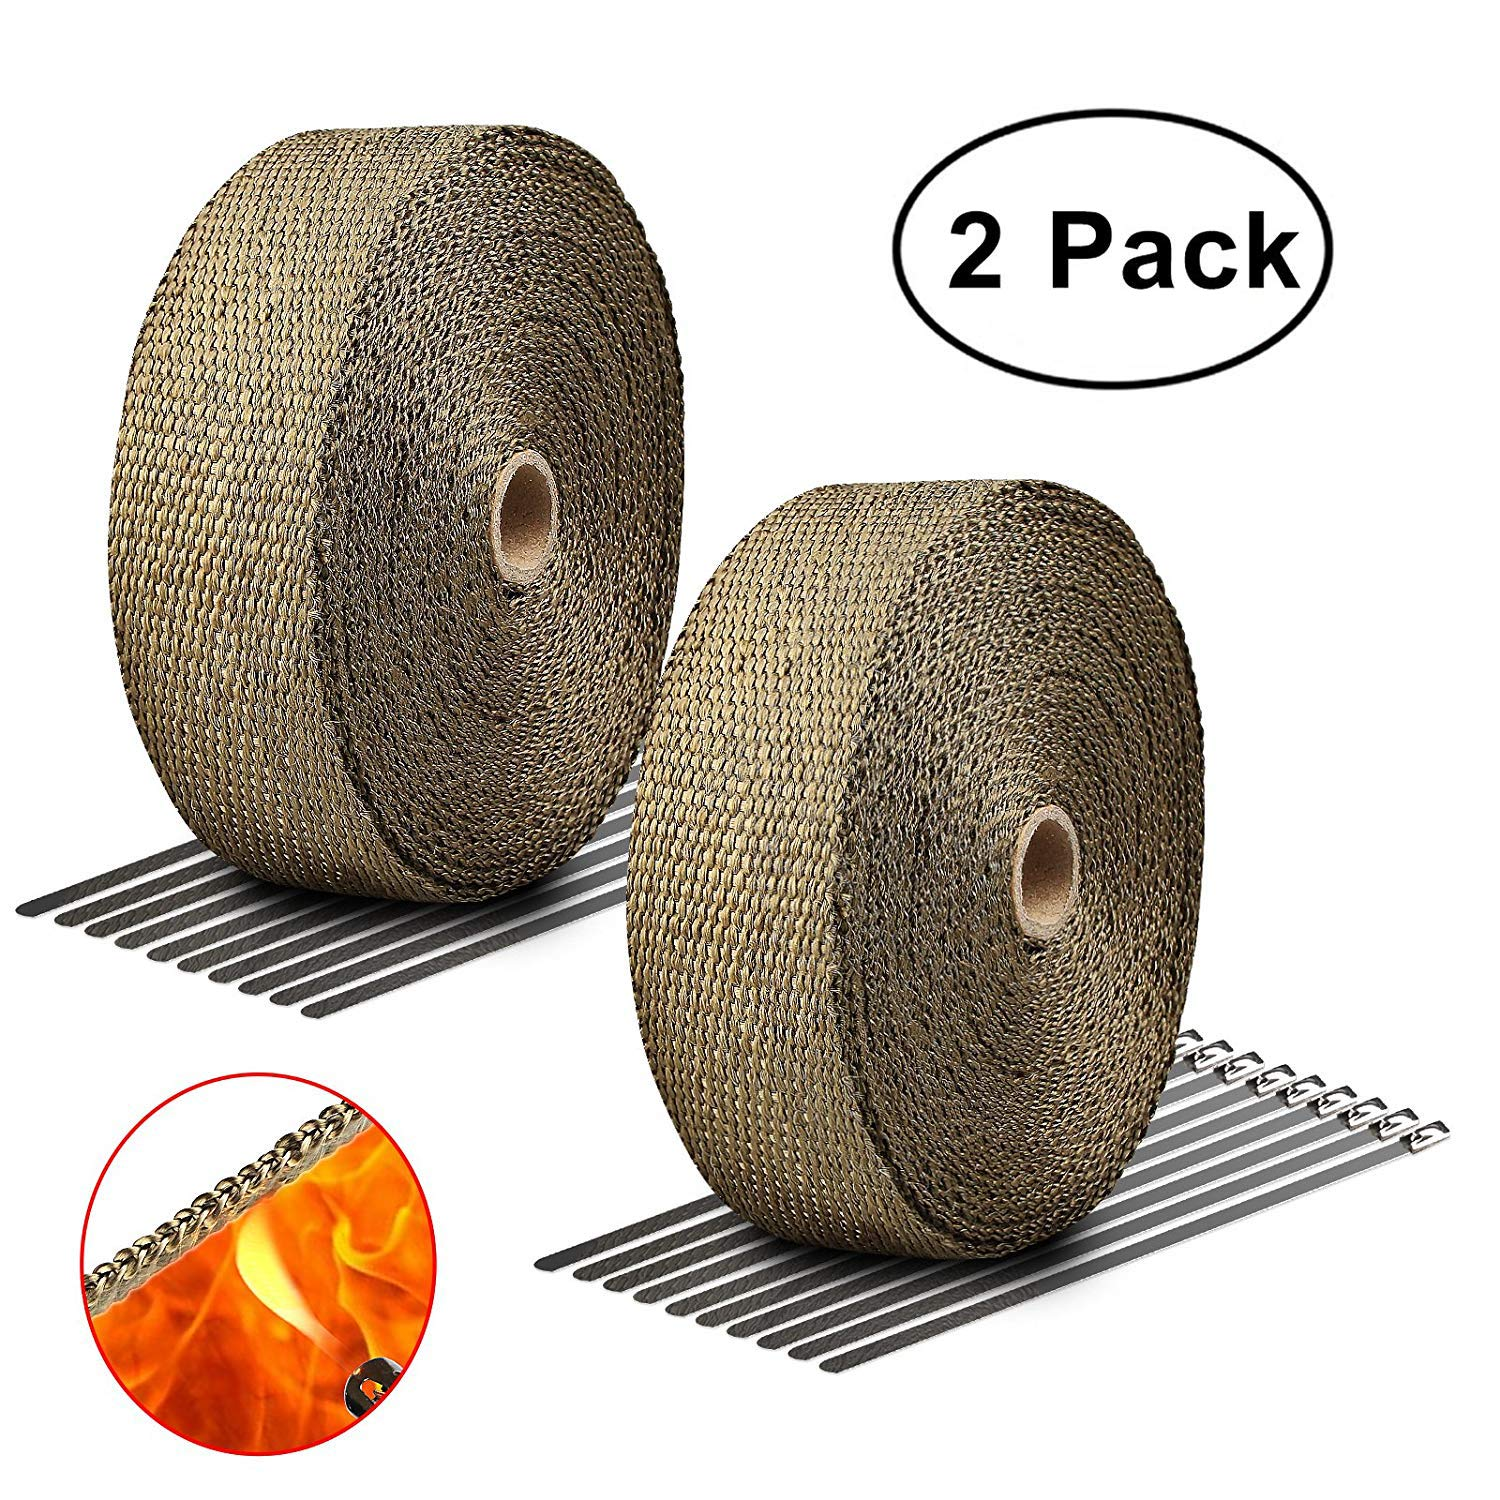 LIBERRWAY Exhaust Wrap 2' x50Ft Heat Wrap Tap Header Glassfiber for Car Motorcycle + 10 Stainless Ties 2 Pack RTEHWT10STIE50FT2PACK